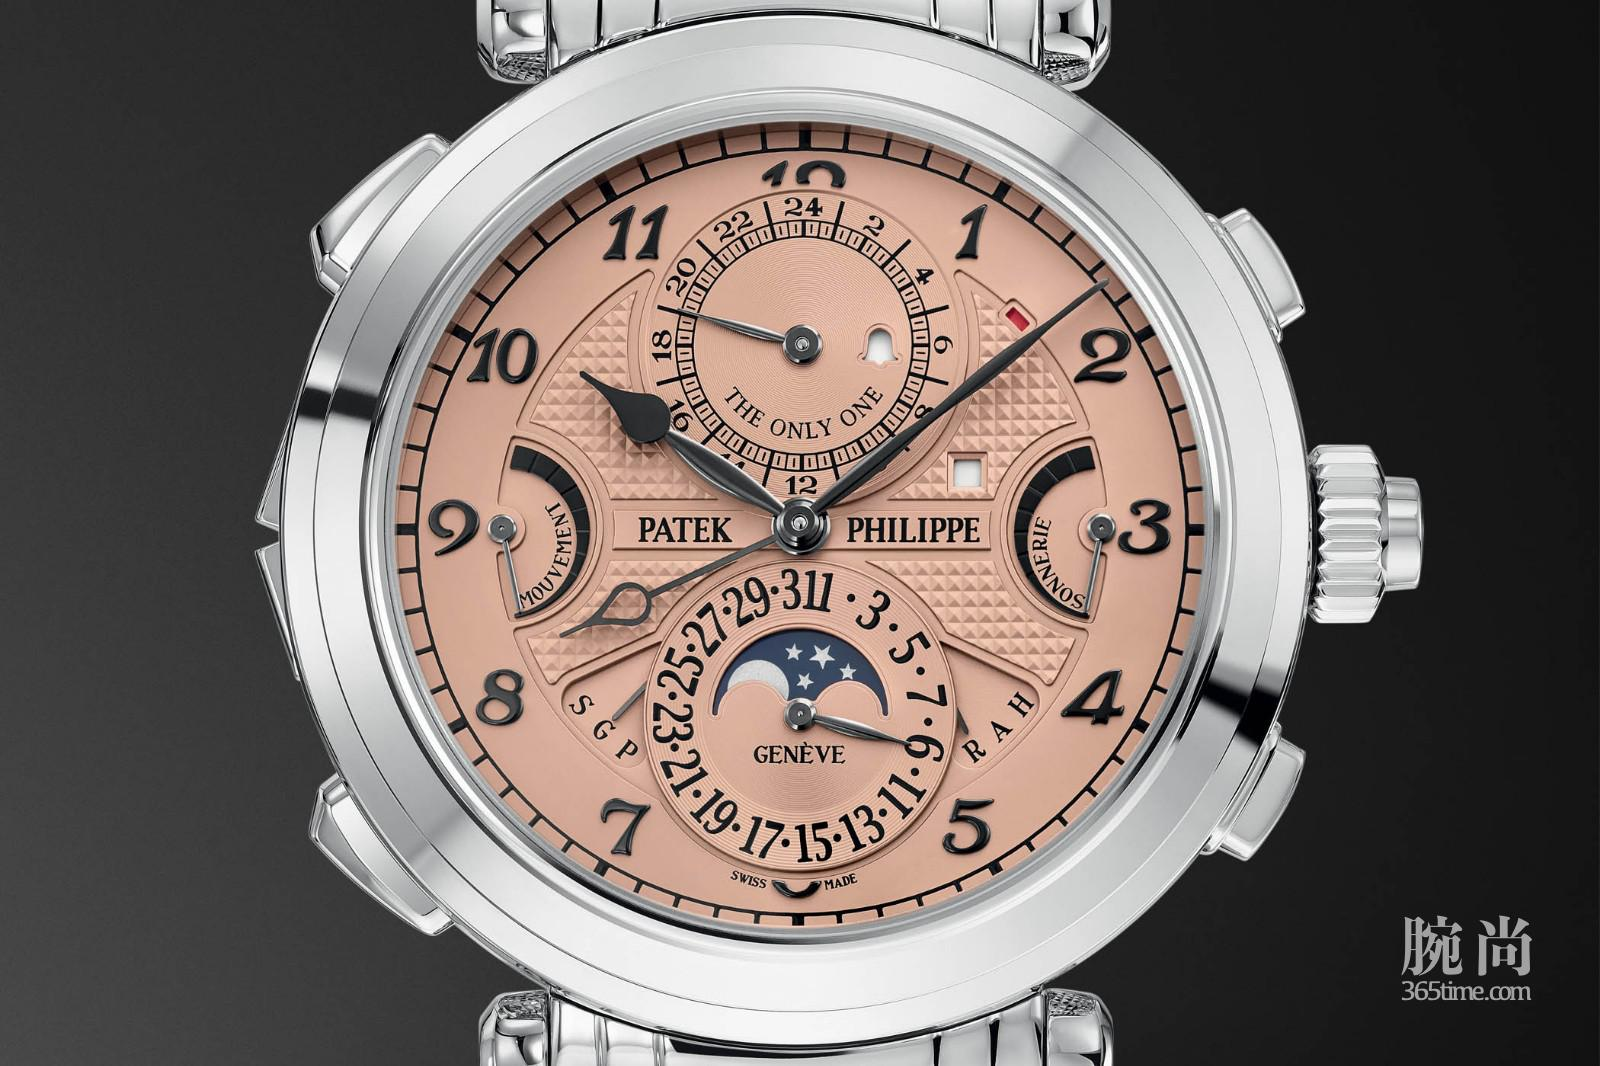 Only-Watch-2019-Patek-Philippe-6300A-Steel-grandmaster-chime-2.jpg